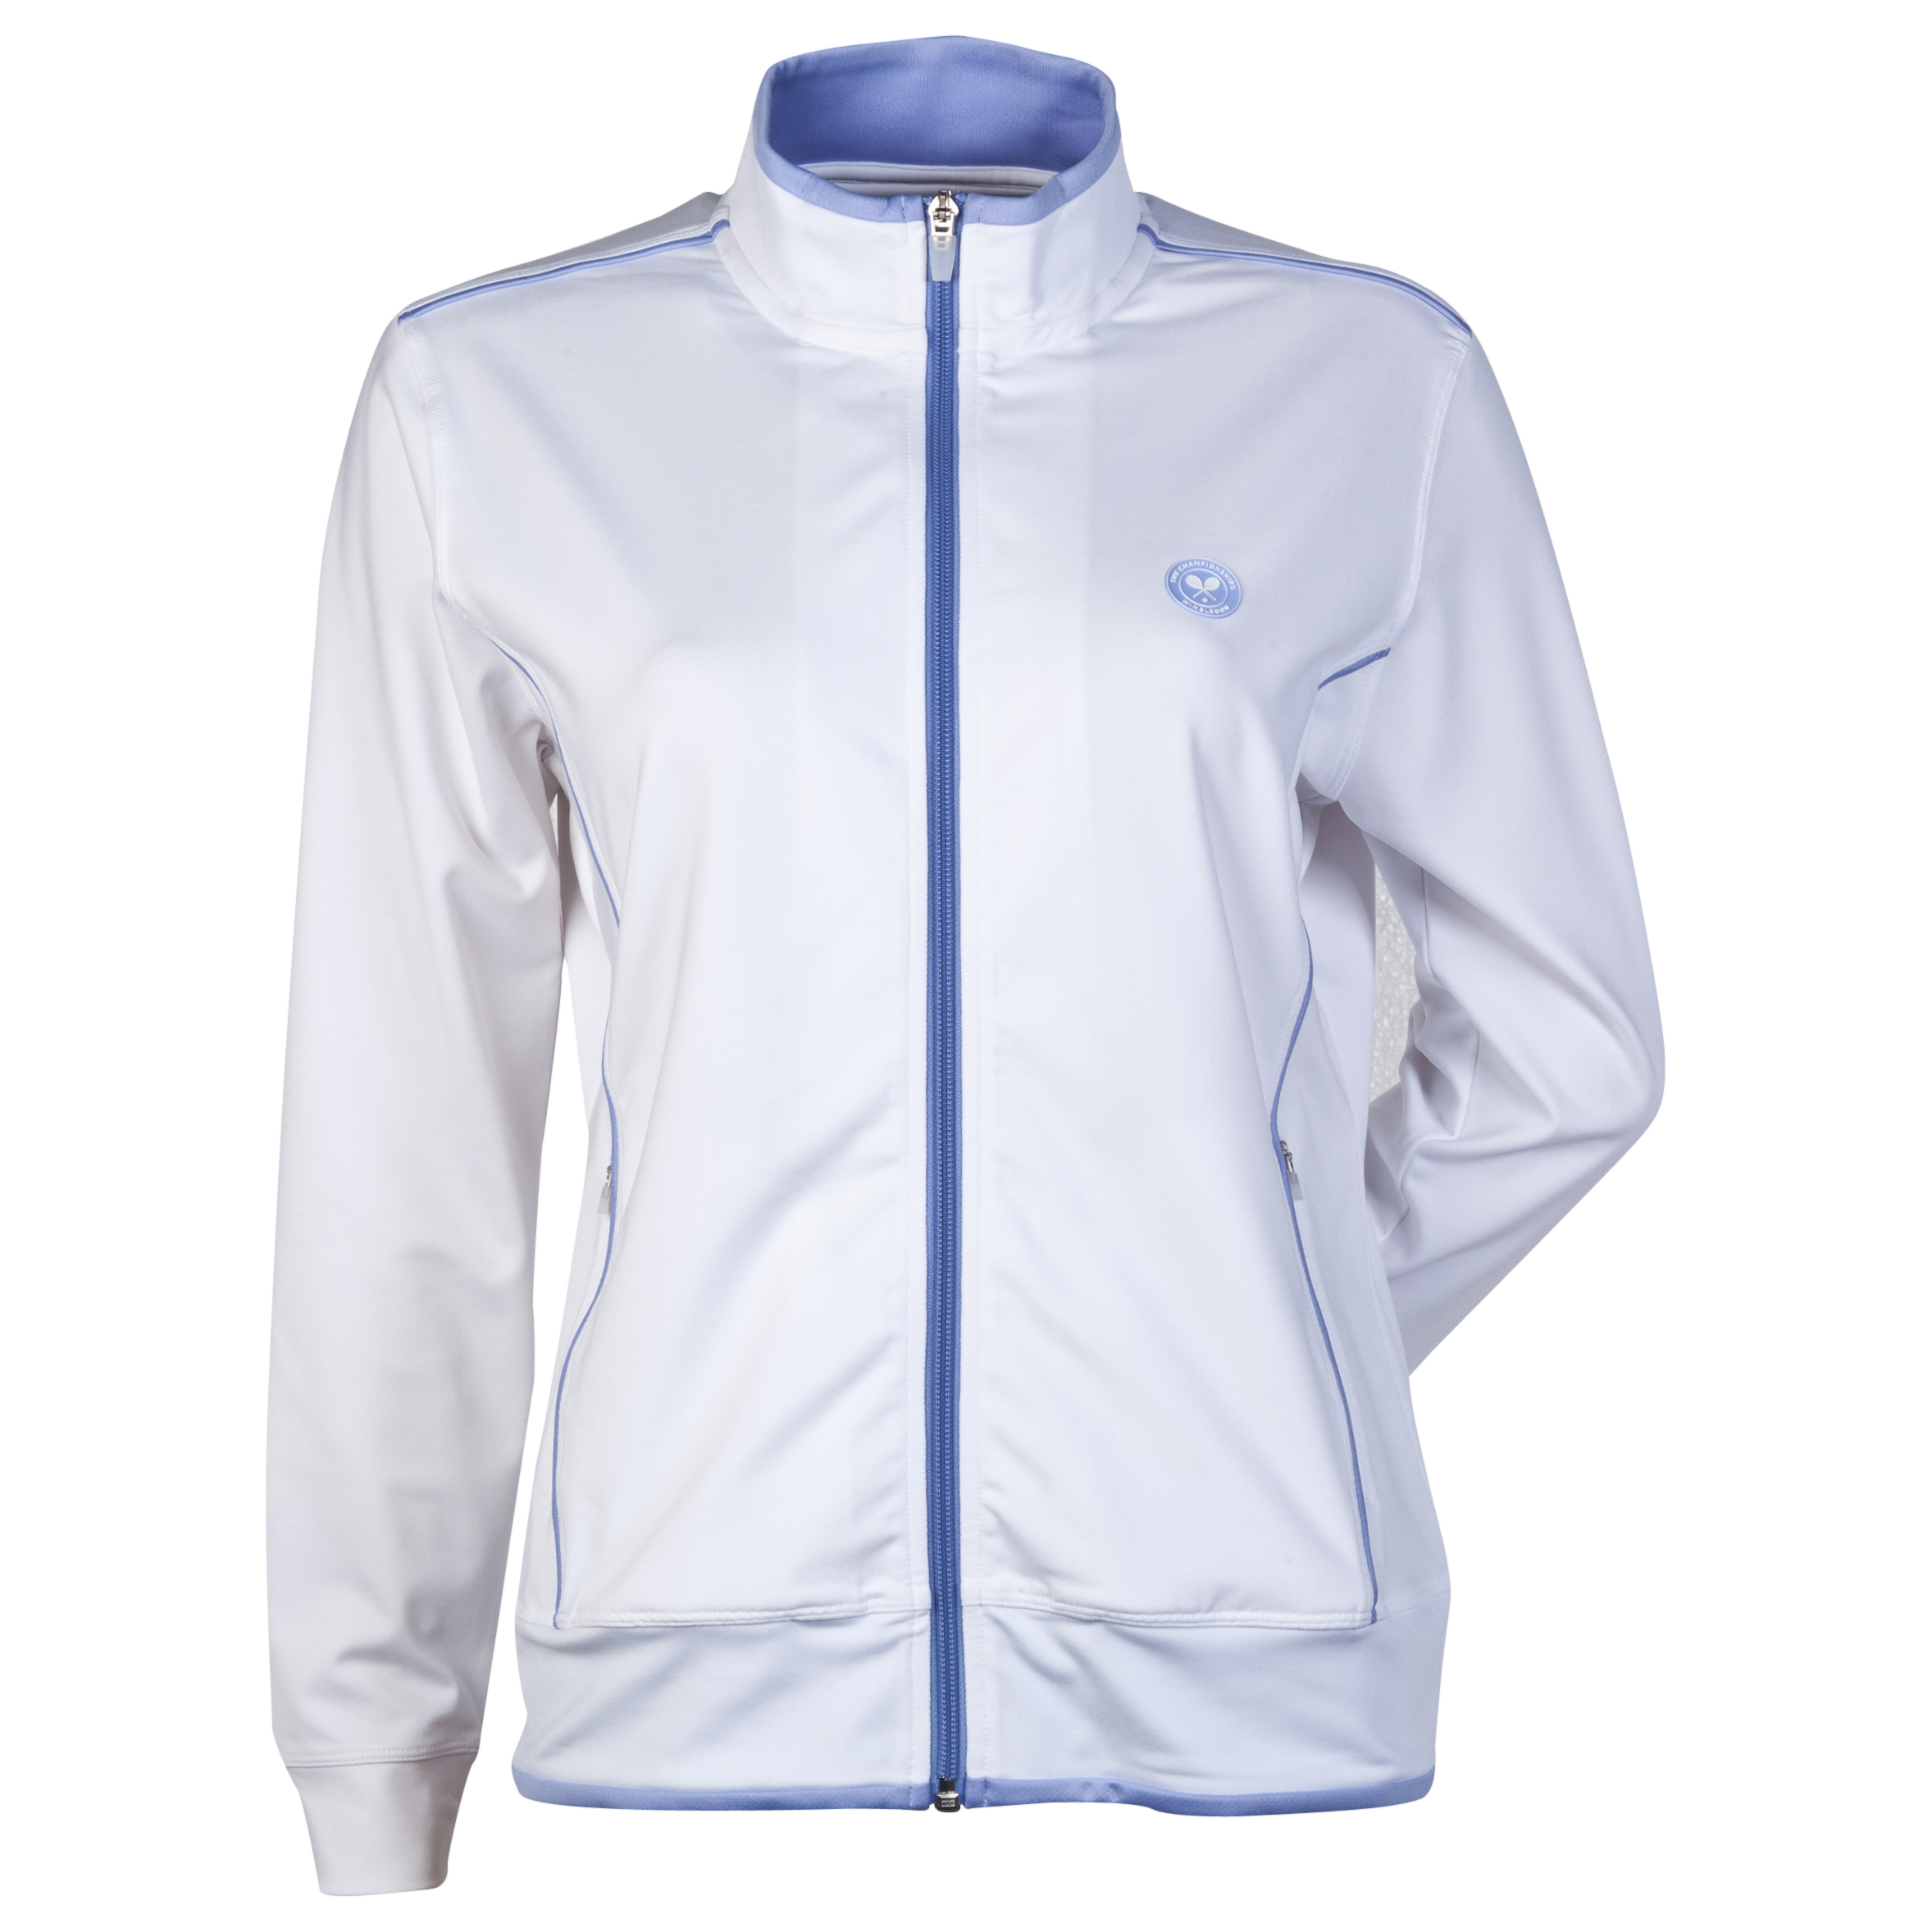 Wimbledon Performance Full Zip - Womens White